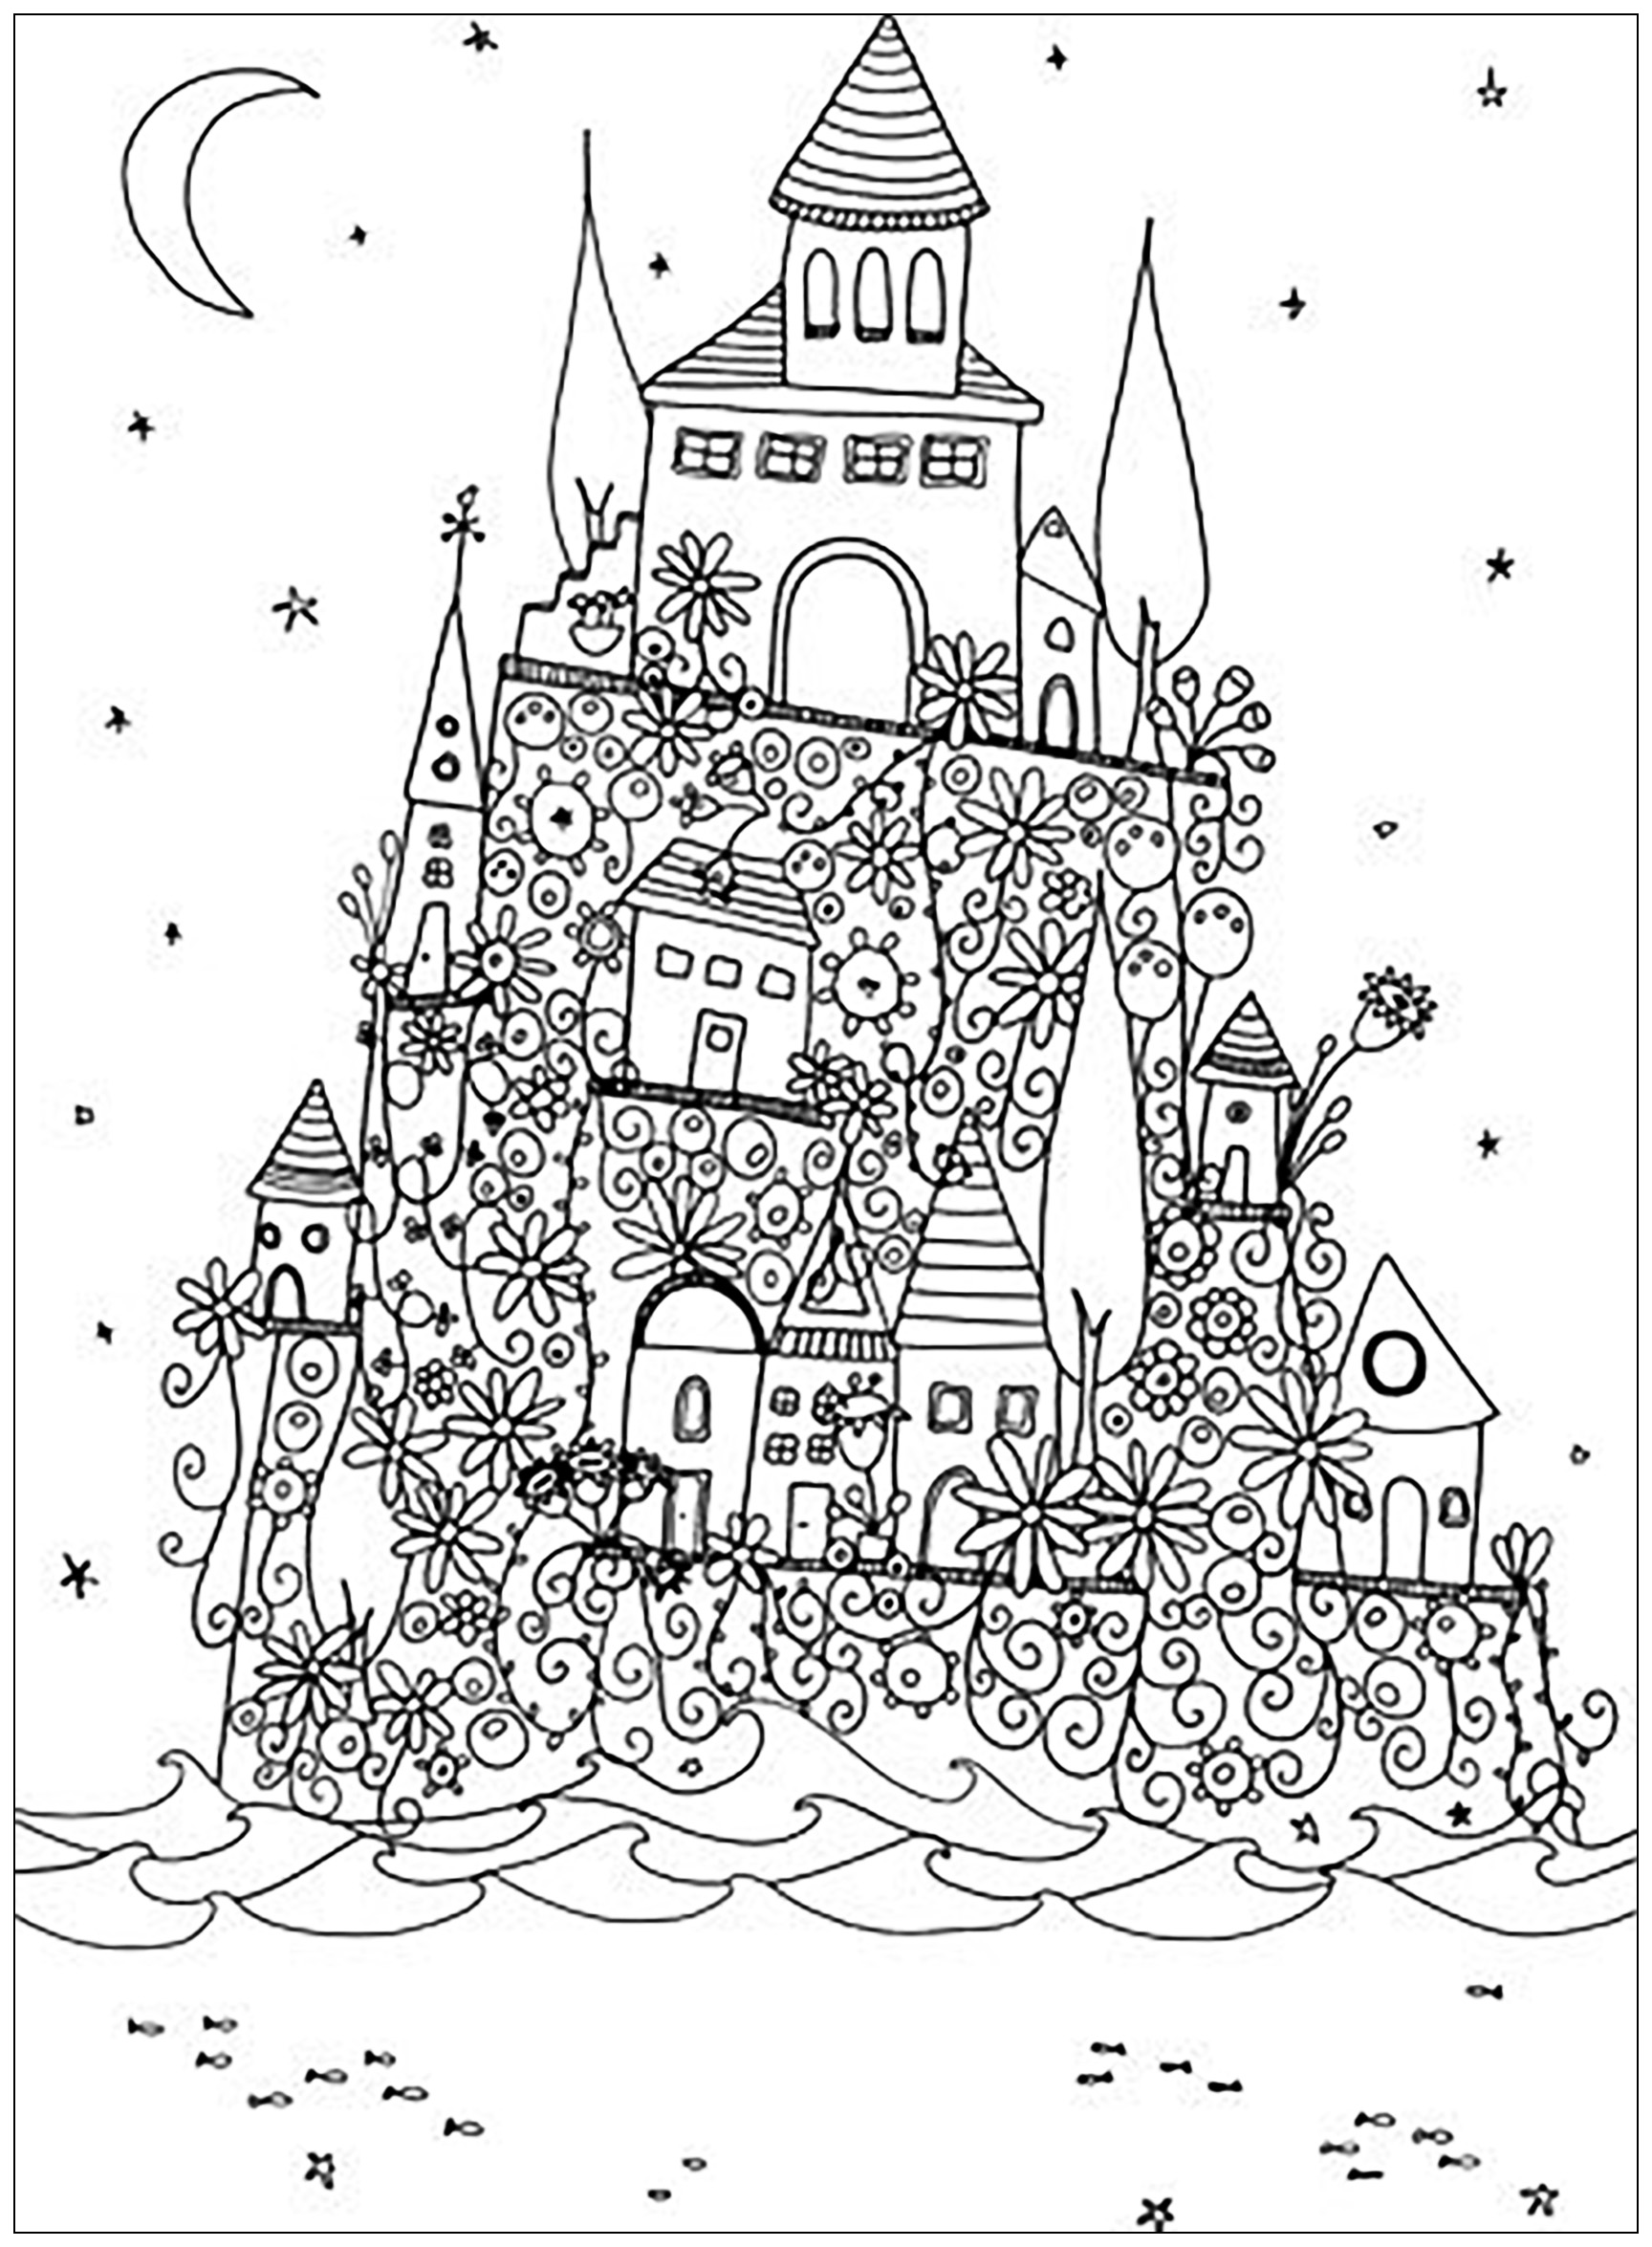 Coloring adult fantasy castle